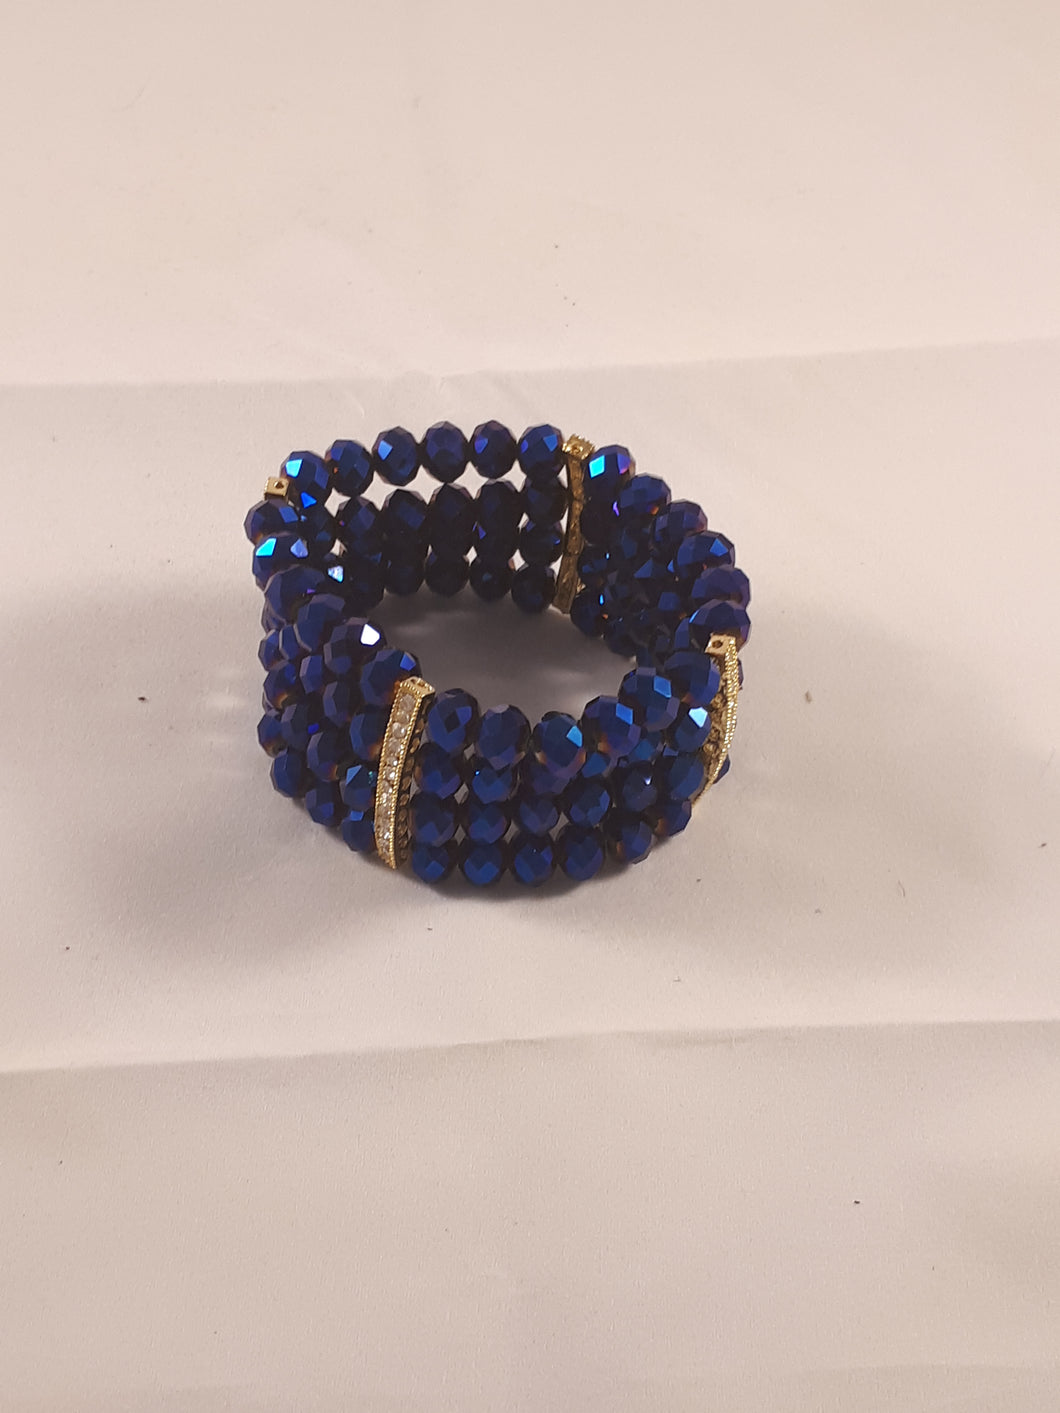 Multiple strands elastic bracelets